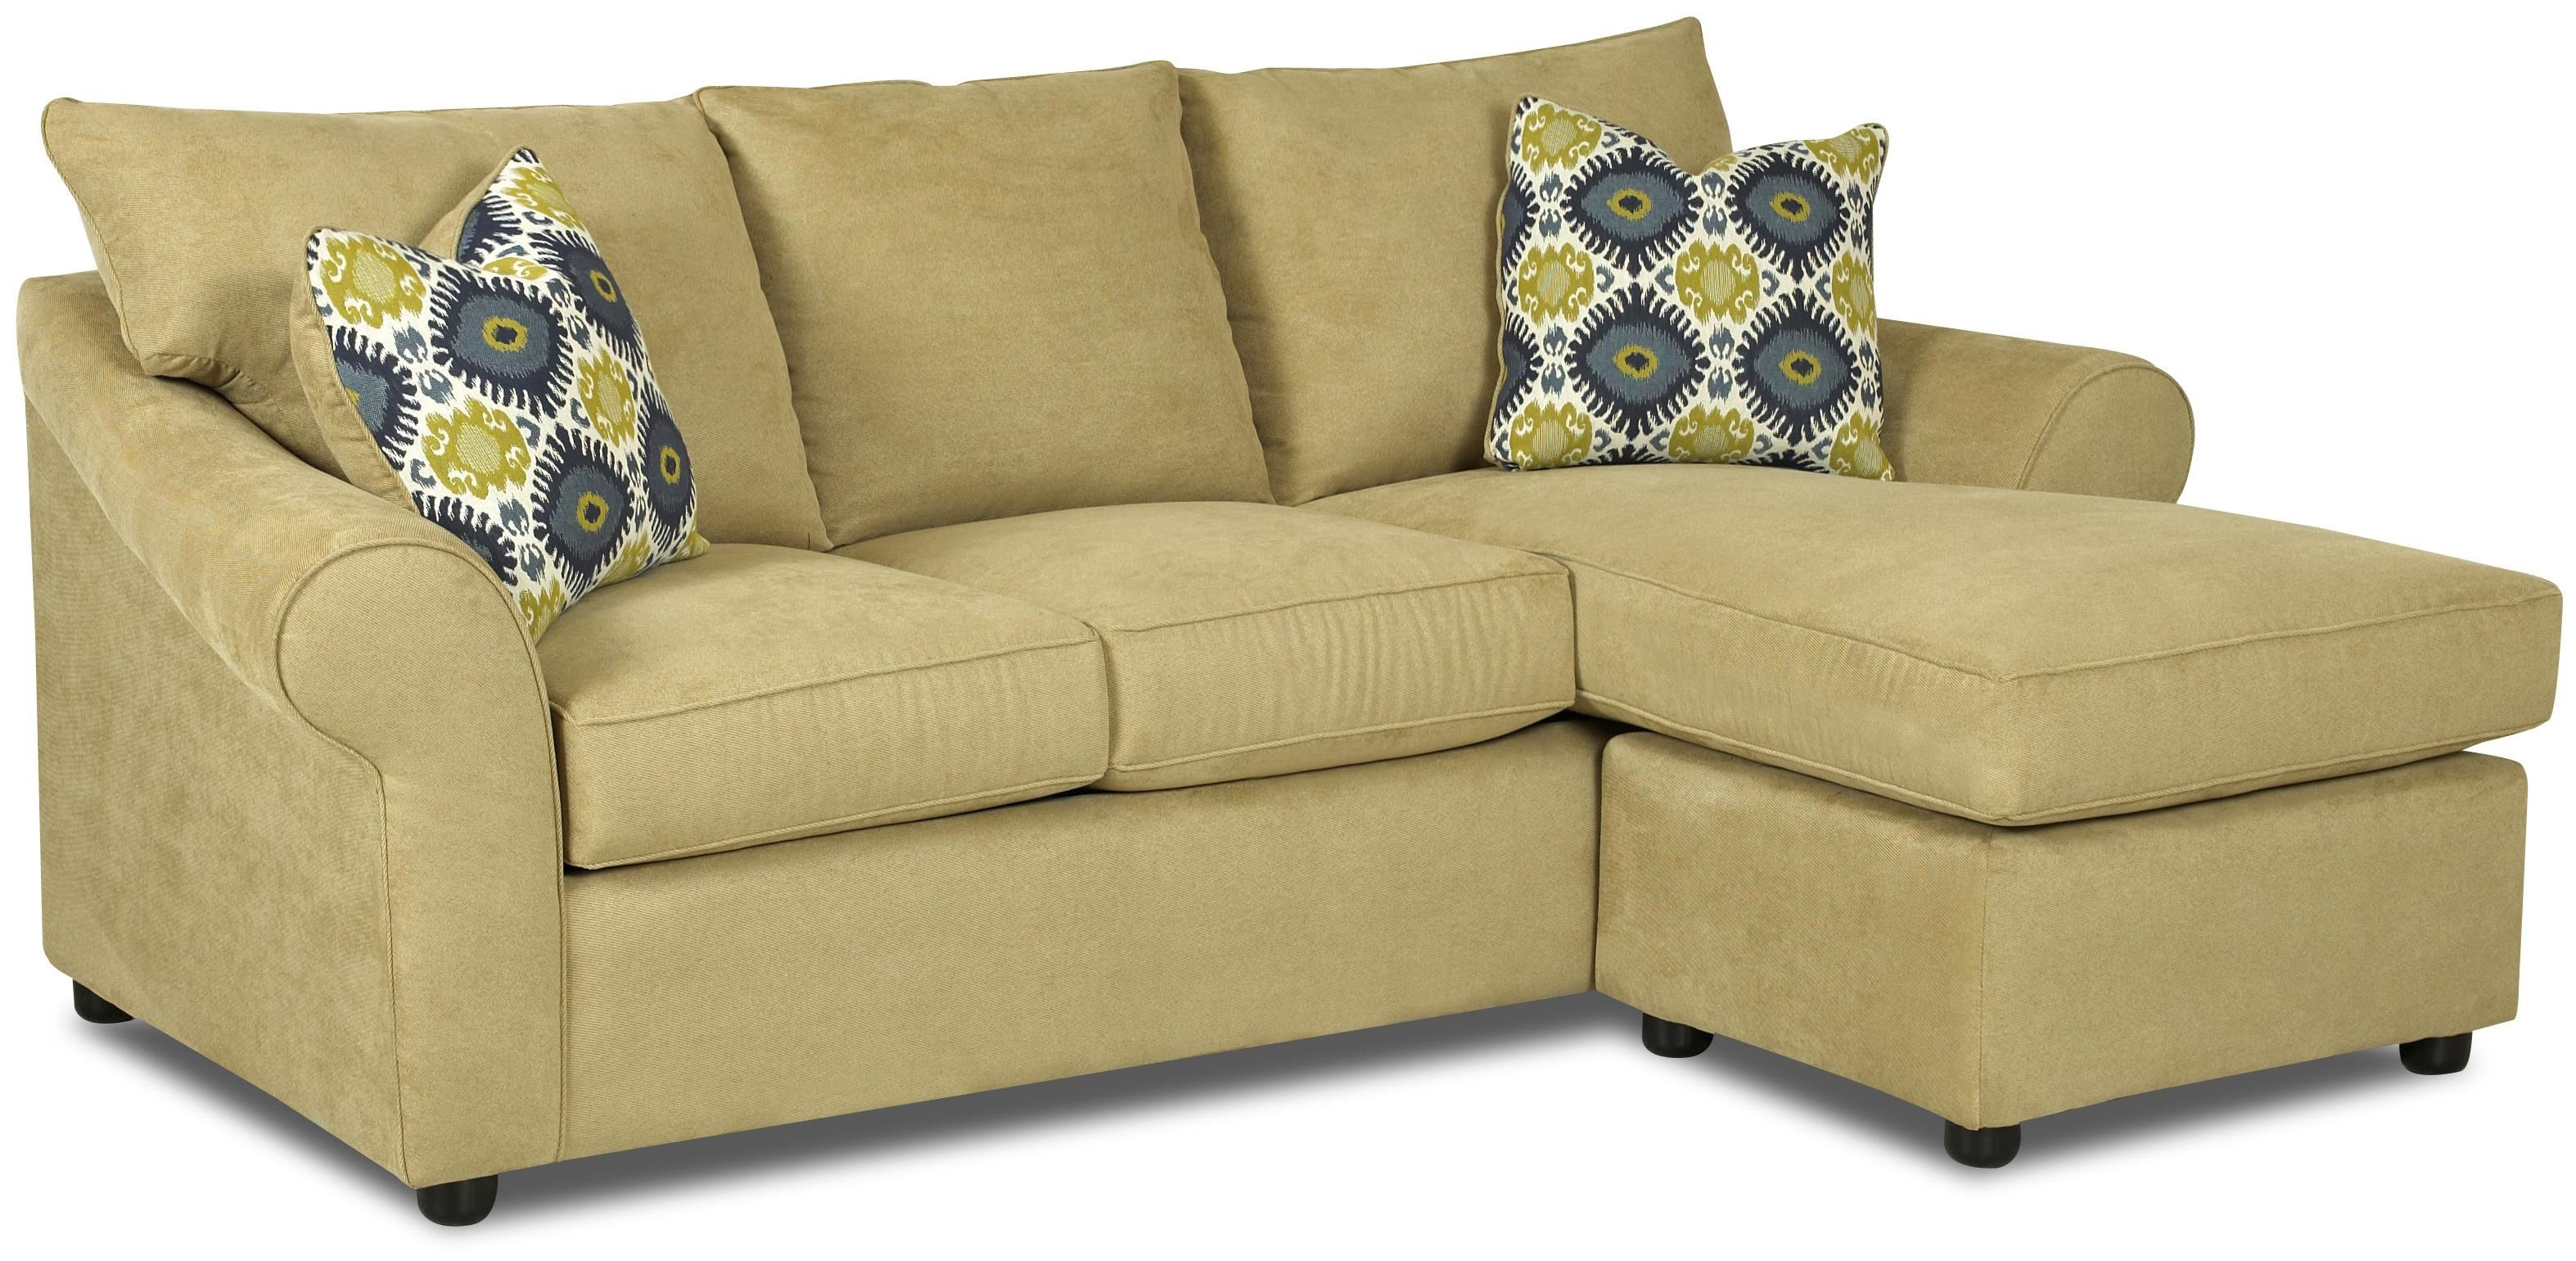 incredible oversized sectional sofas wallpaper-Lovely Oversized Sectional sofas Portrait